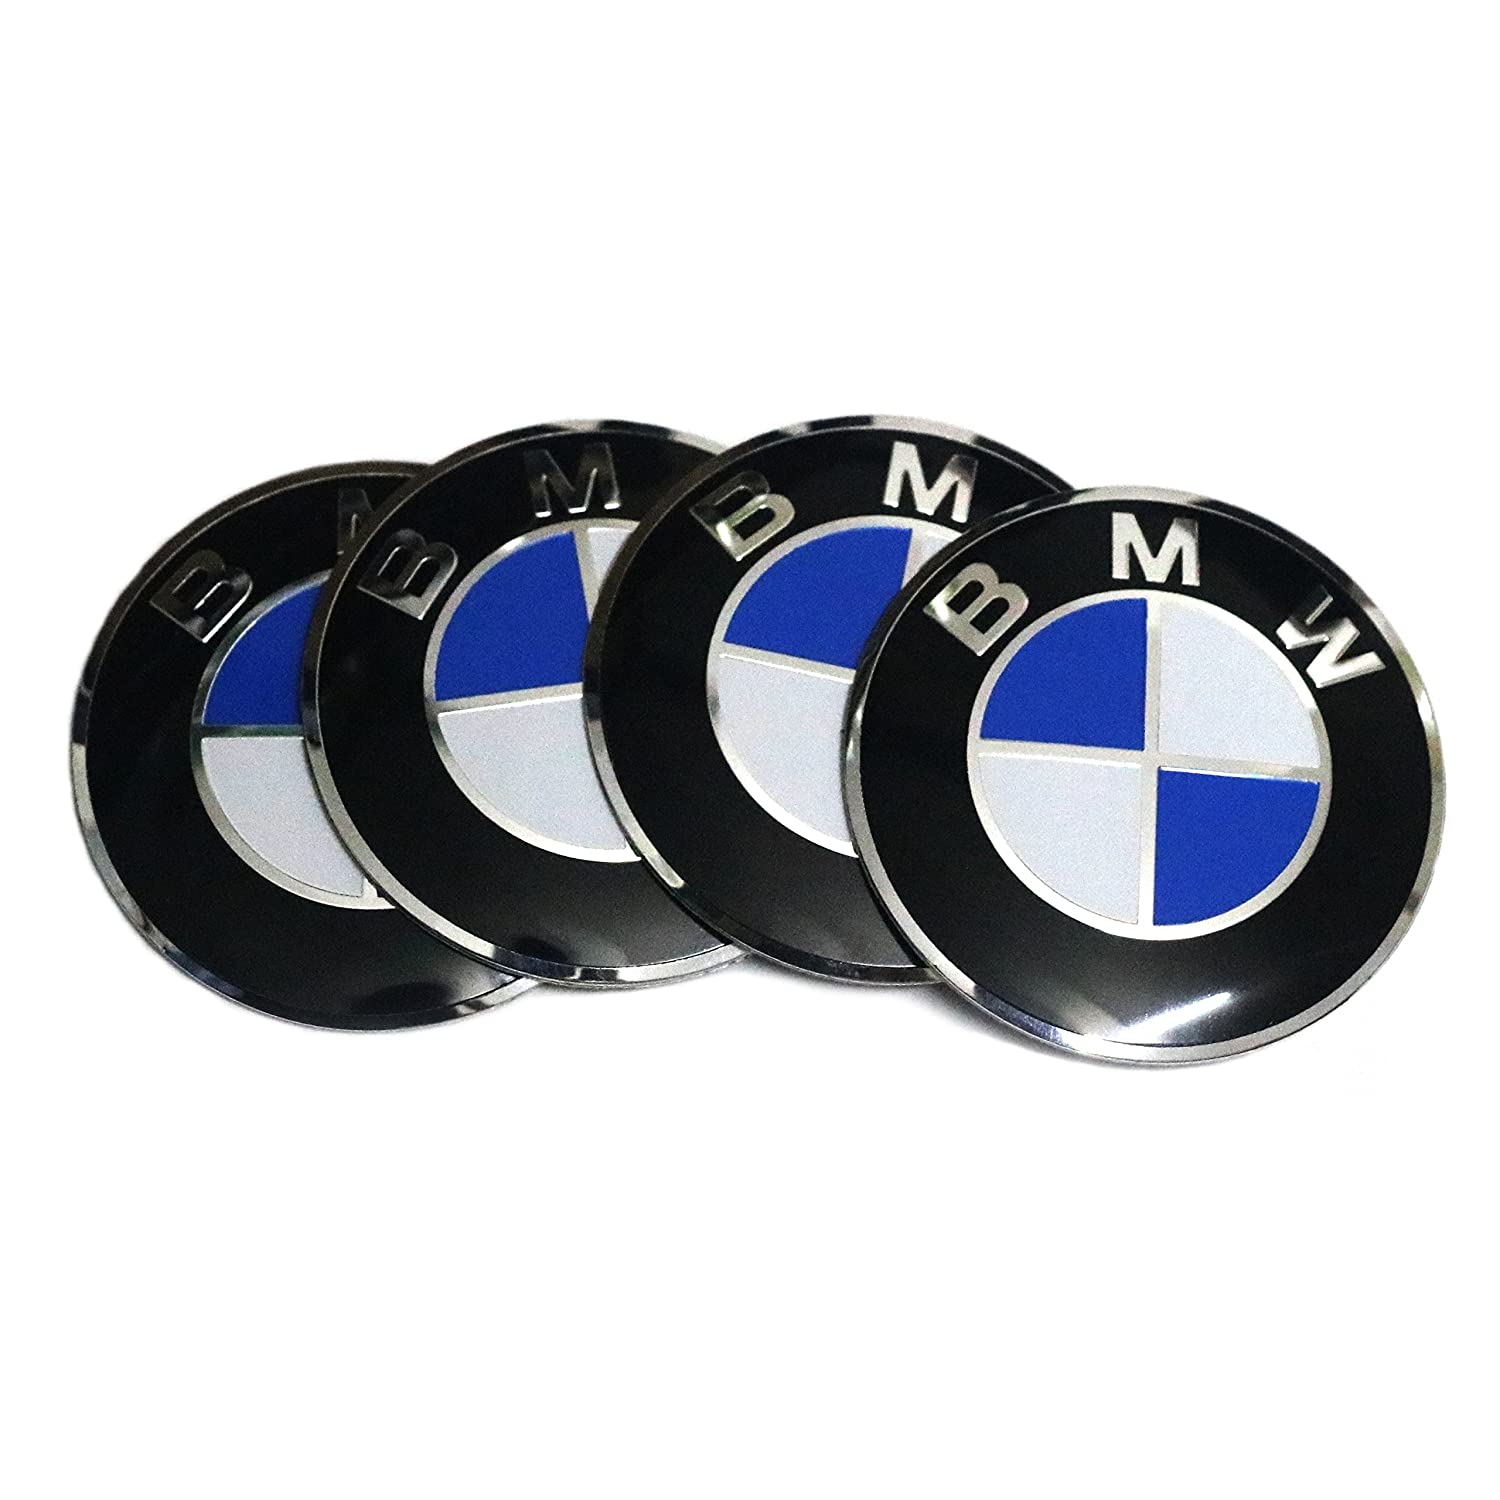 4X 56MM / 2.2' Aluminum Wheel Center Hub Cap Emblem Stickers Badges for BMW 3 4 5 6 7 X Series Stream